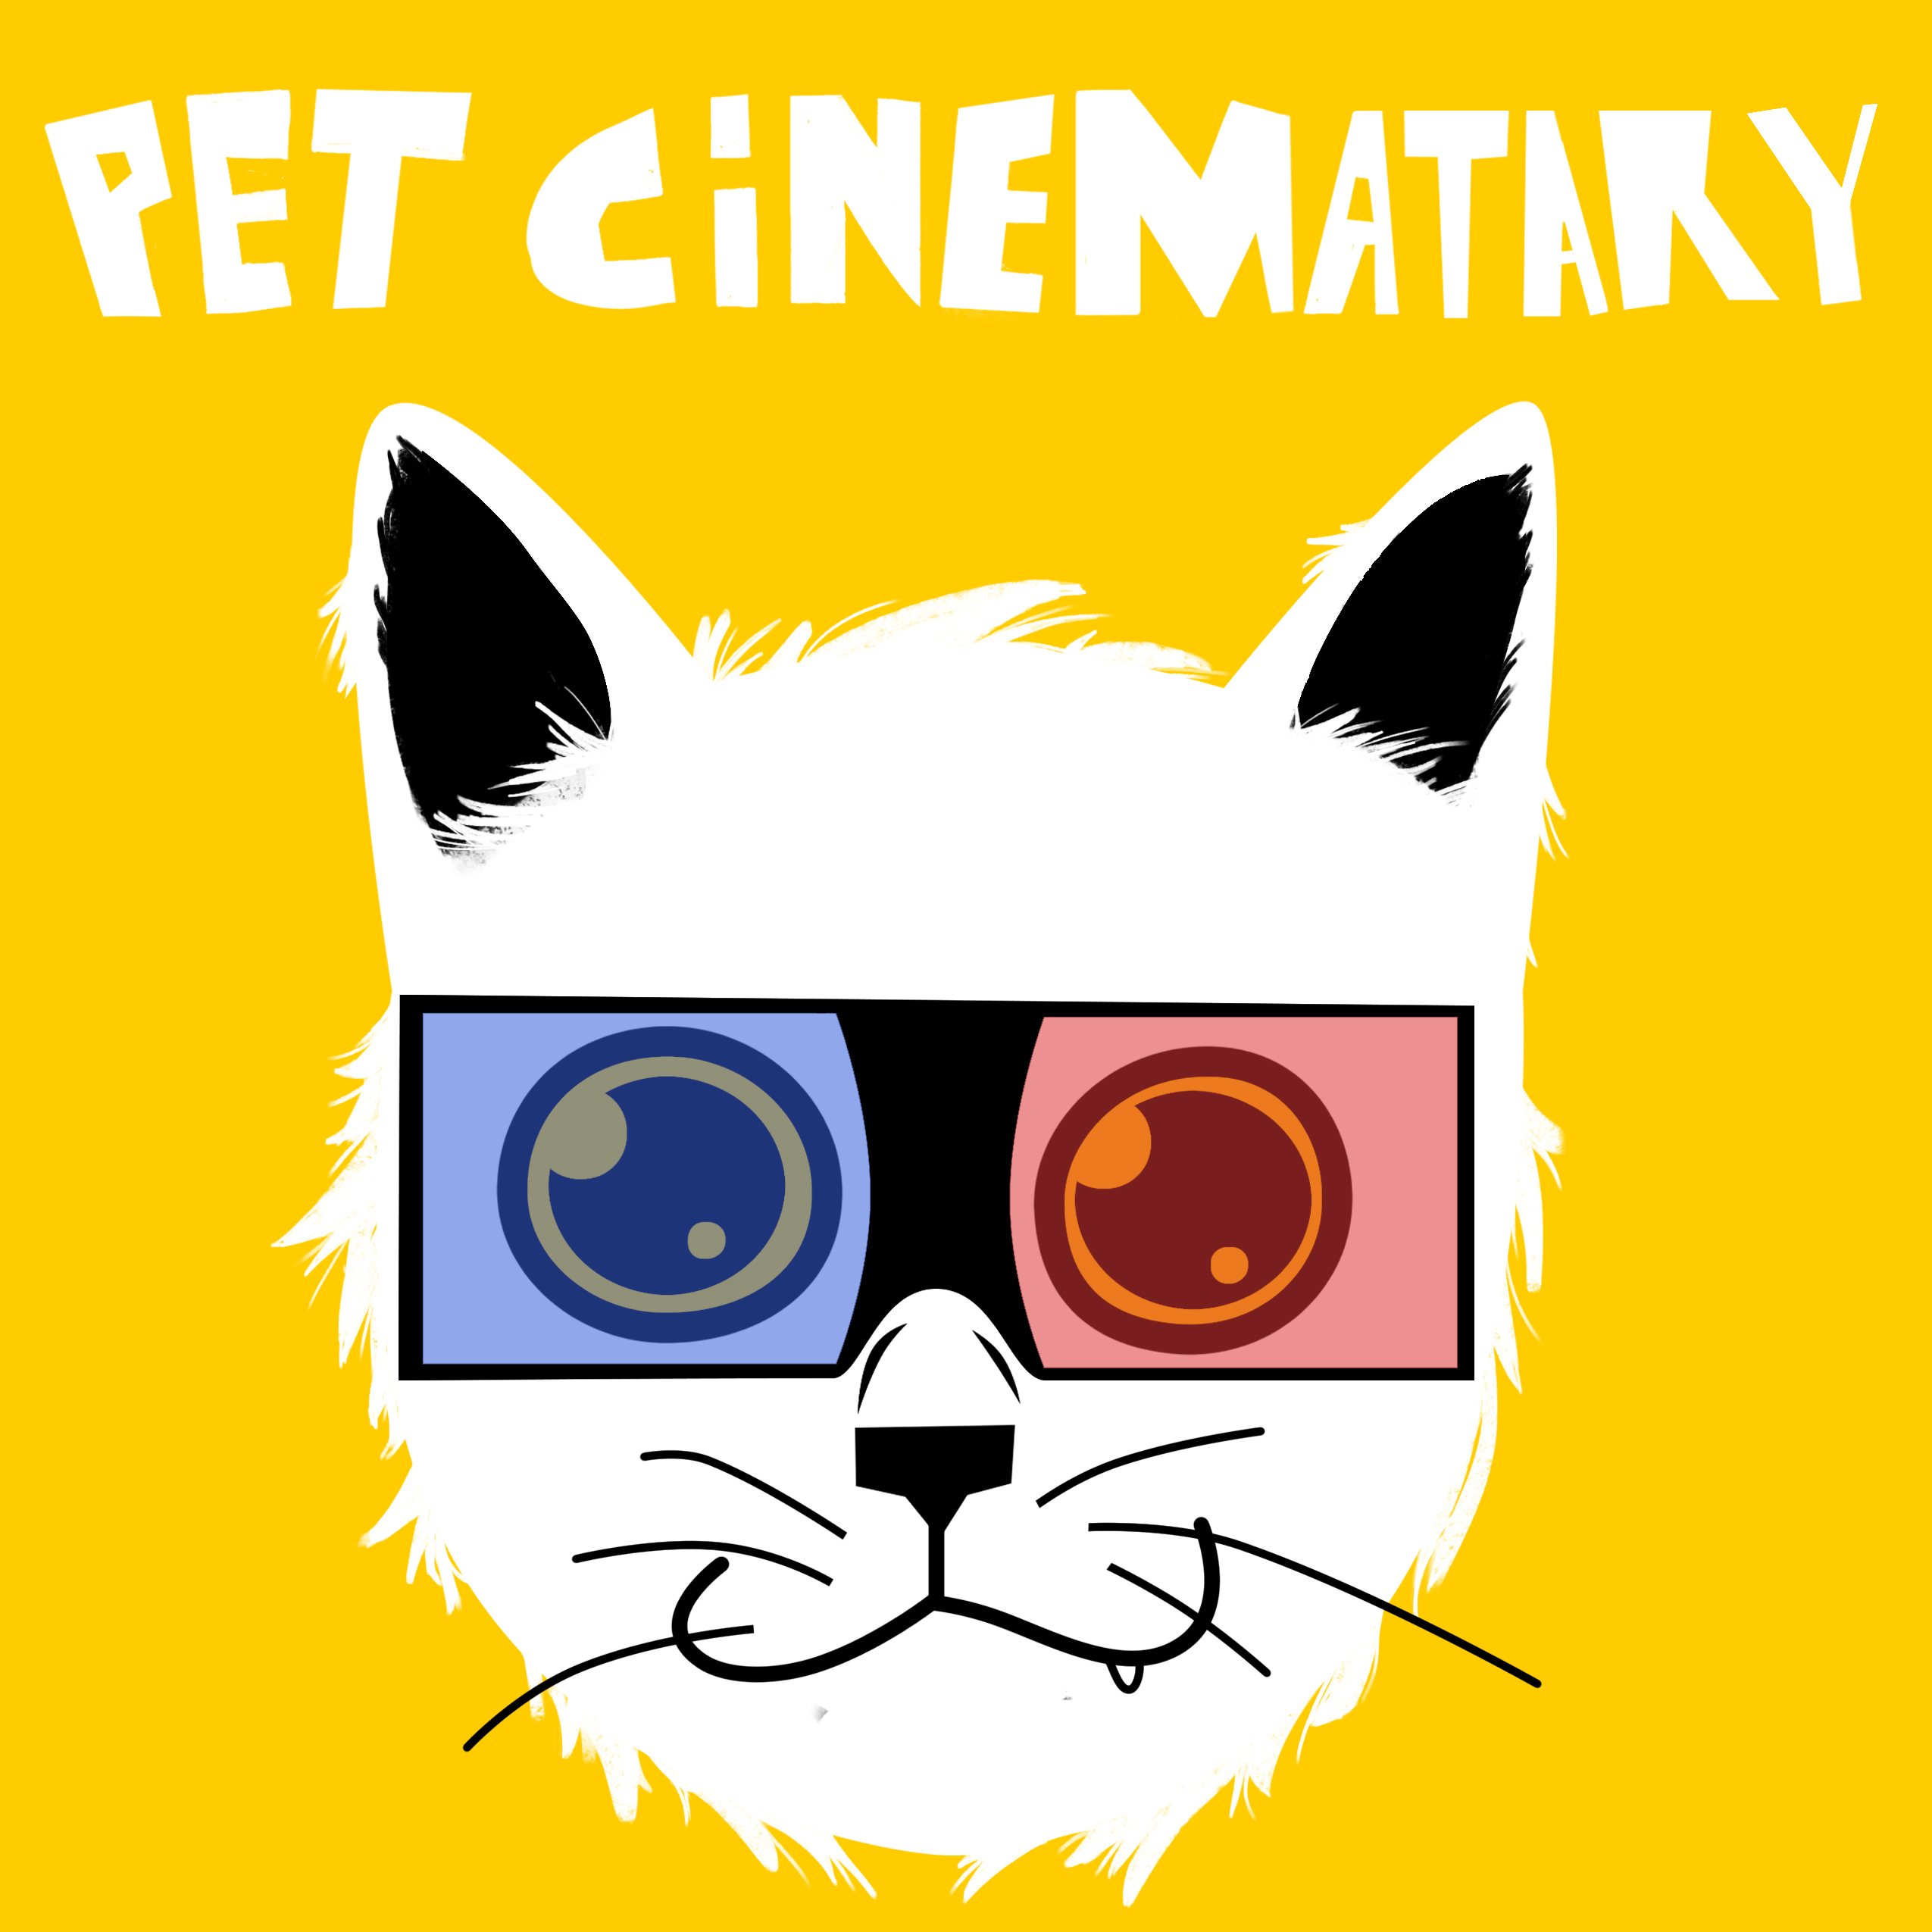 Pet Cinematary